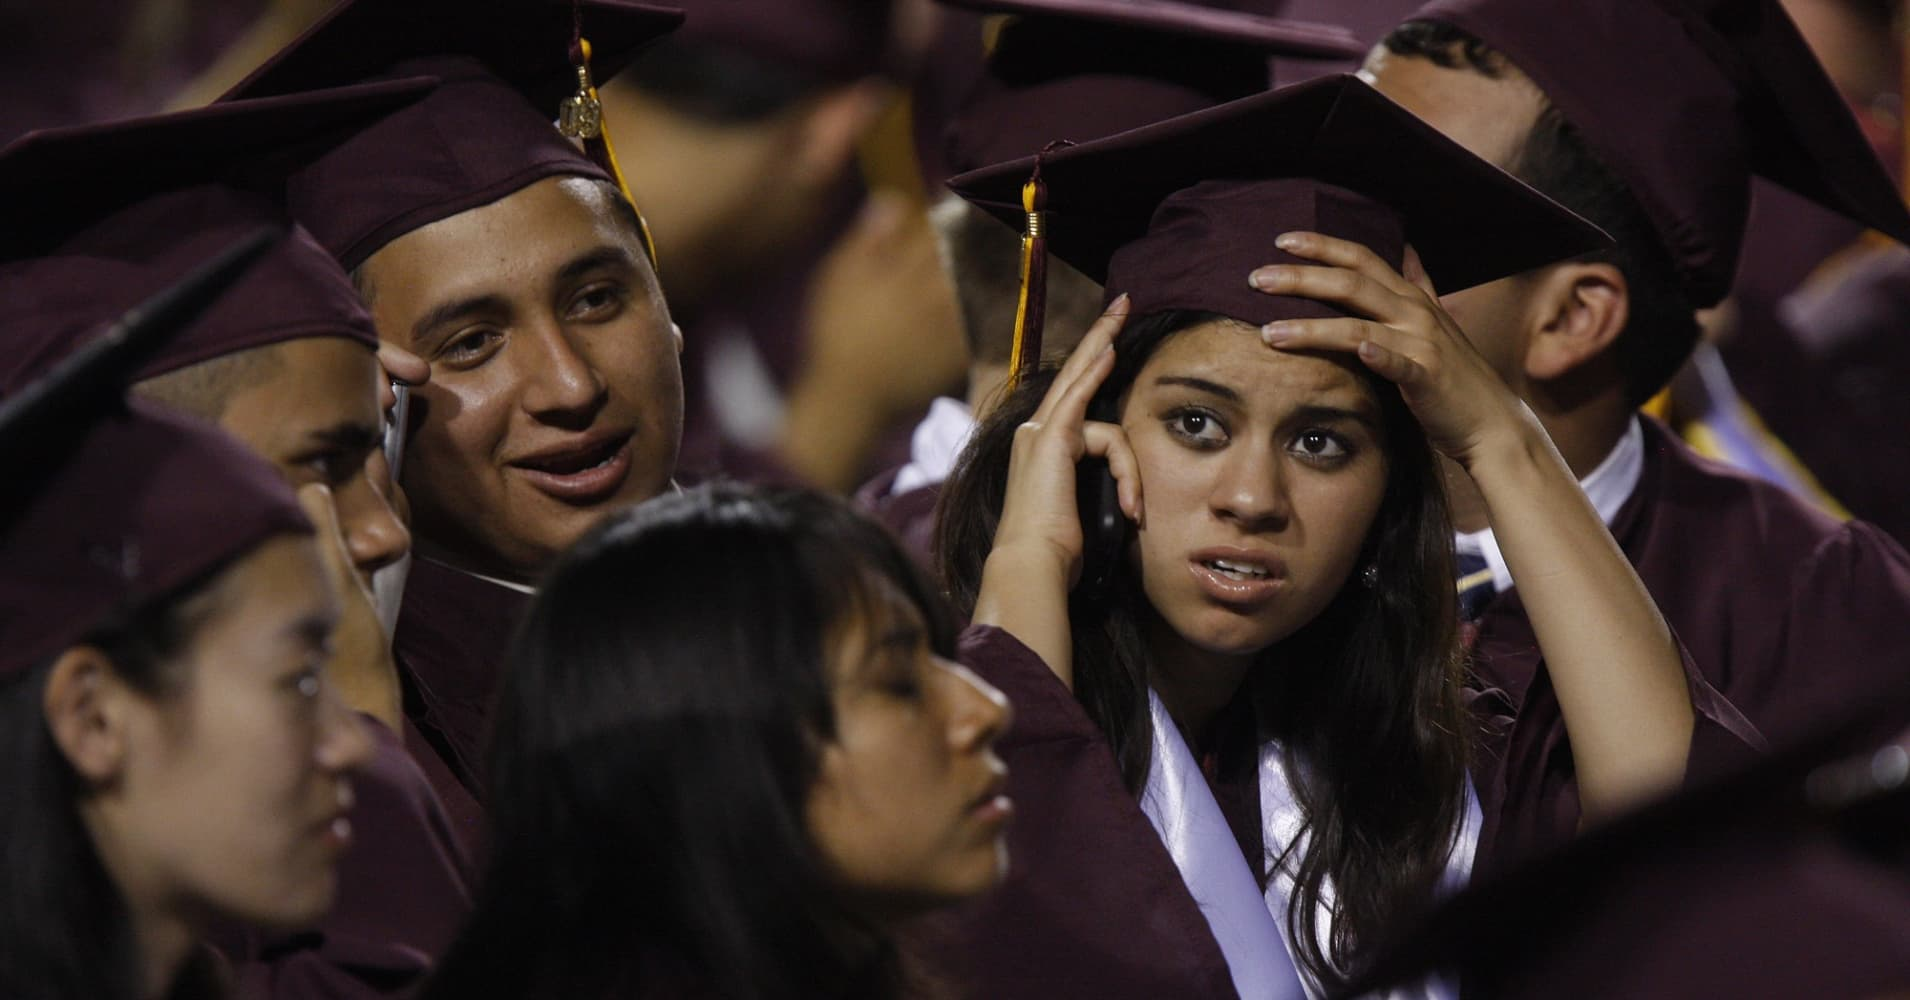 Arizona State University graduate students are seen in their seats during their graduation ceremony after US President Barack Obama delivered the commencement address at Sun Devil Stadium May 13, 2009, in Tempe, Arizona. Over 65,000 people attended the graduation.